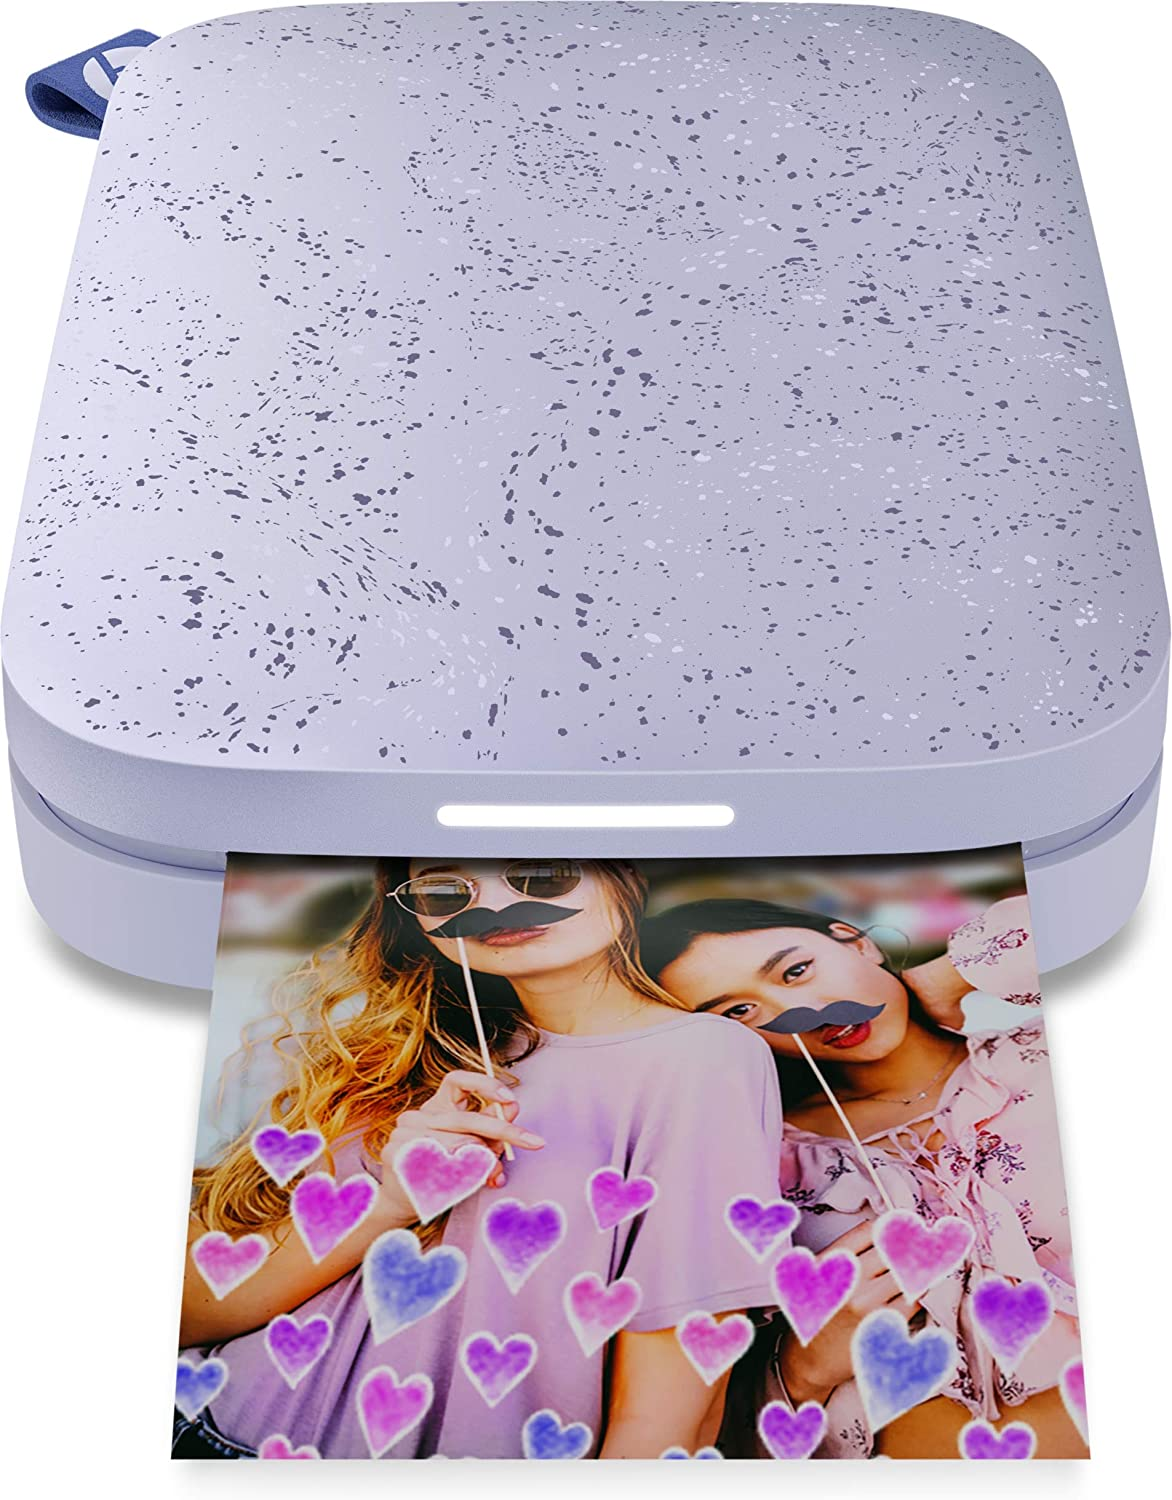 HP - Sprocket 2nd Edition Instant Photo Printer - Lilac (1AS91A)